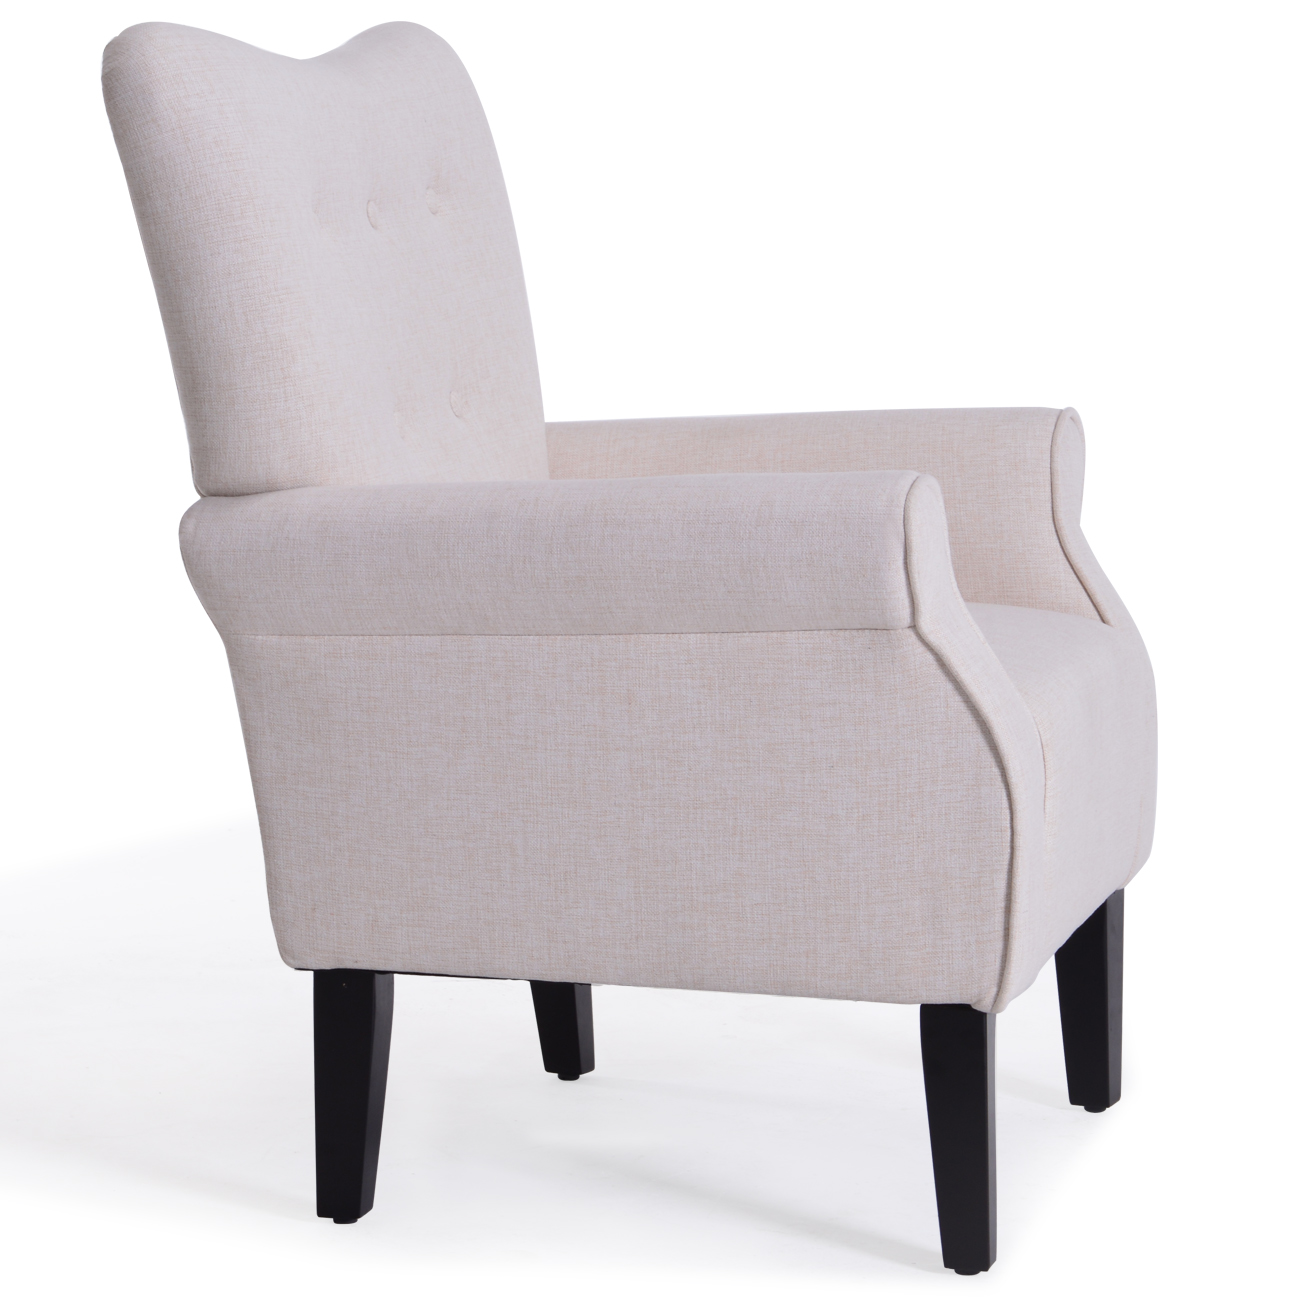 NEW Modern Tufted Accent Chair Living Room Armrest High Backrest ...